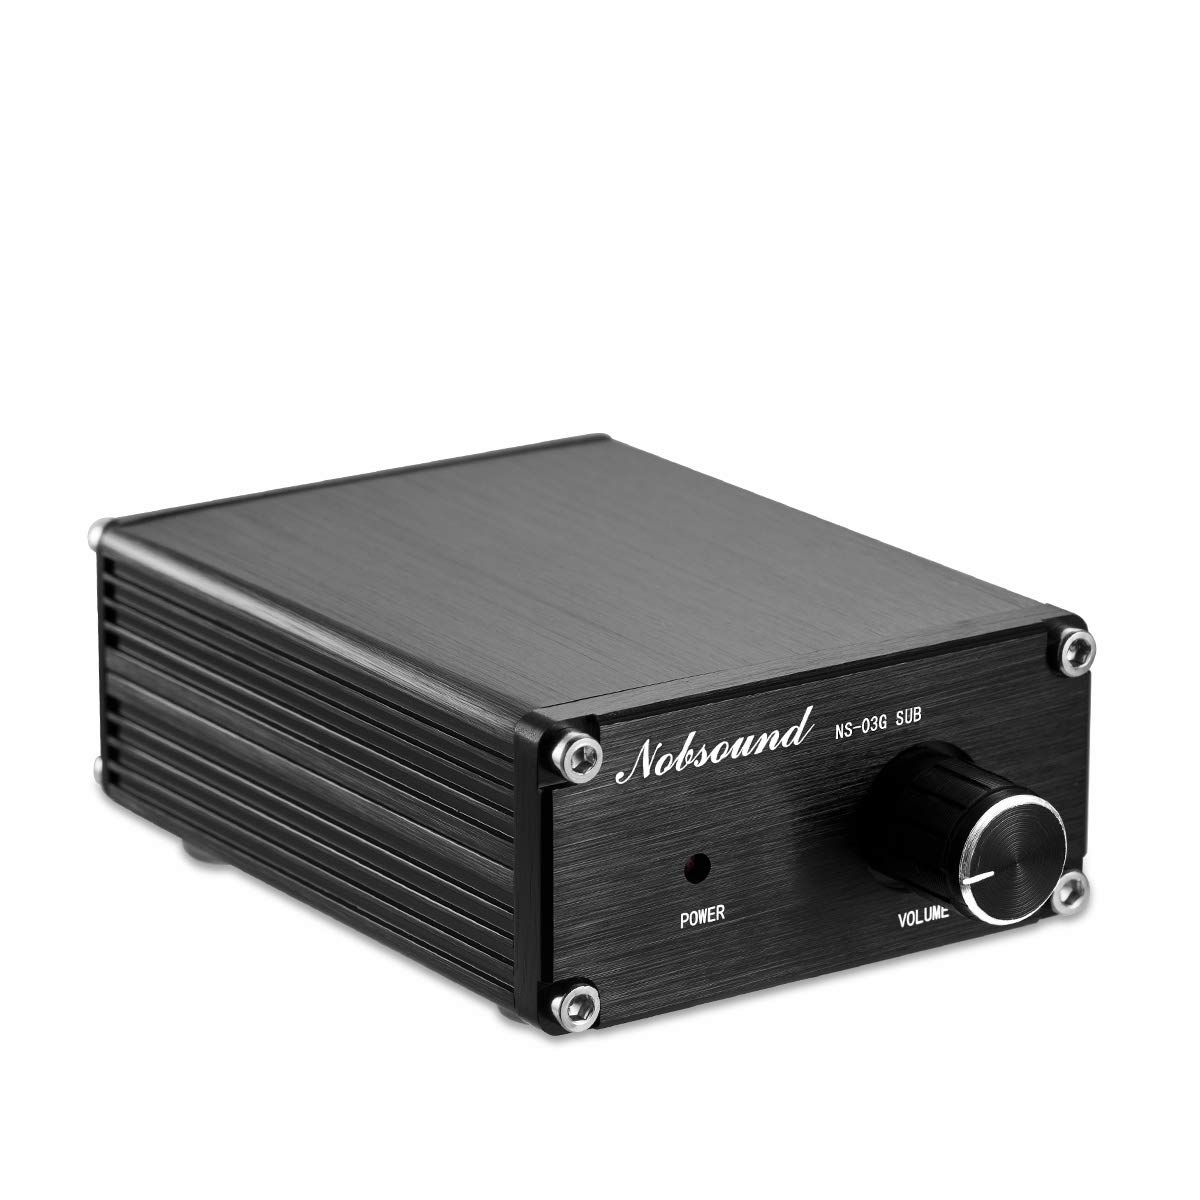 Nobsound 100W Subwoofer Digital Power Amplifier Audio Mini Amp (Subwoofer, Black)